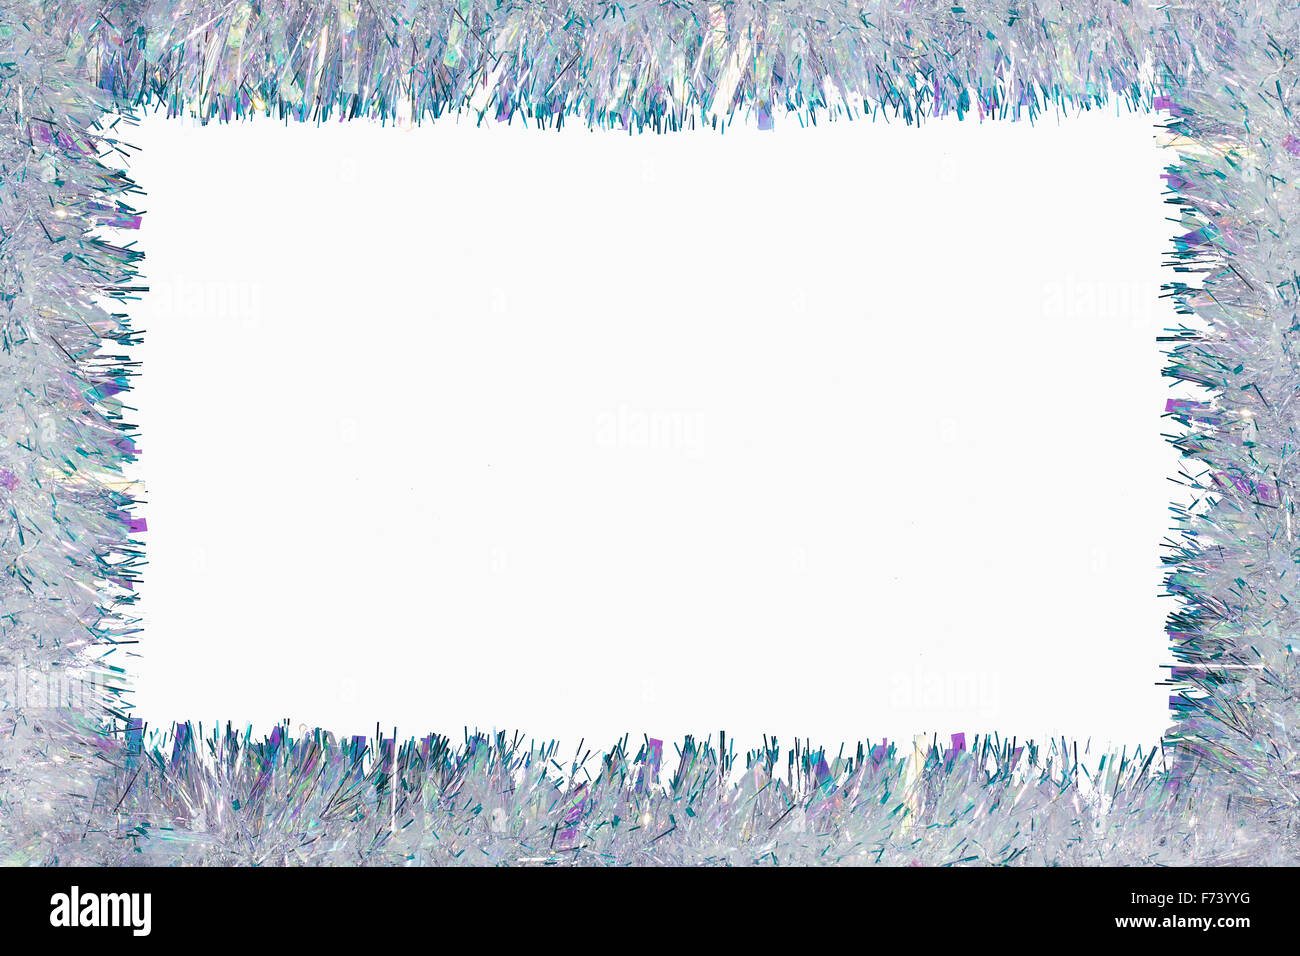 Christmas frame of tinsel garland isolated on white - Stock Image